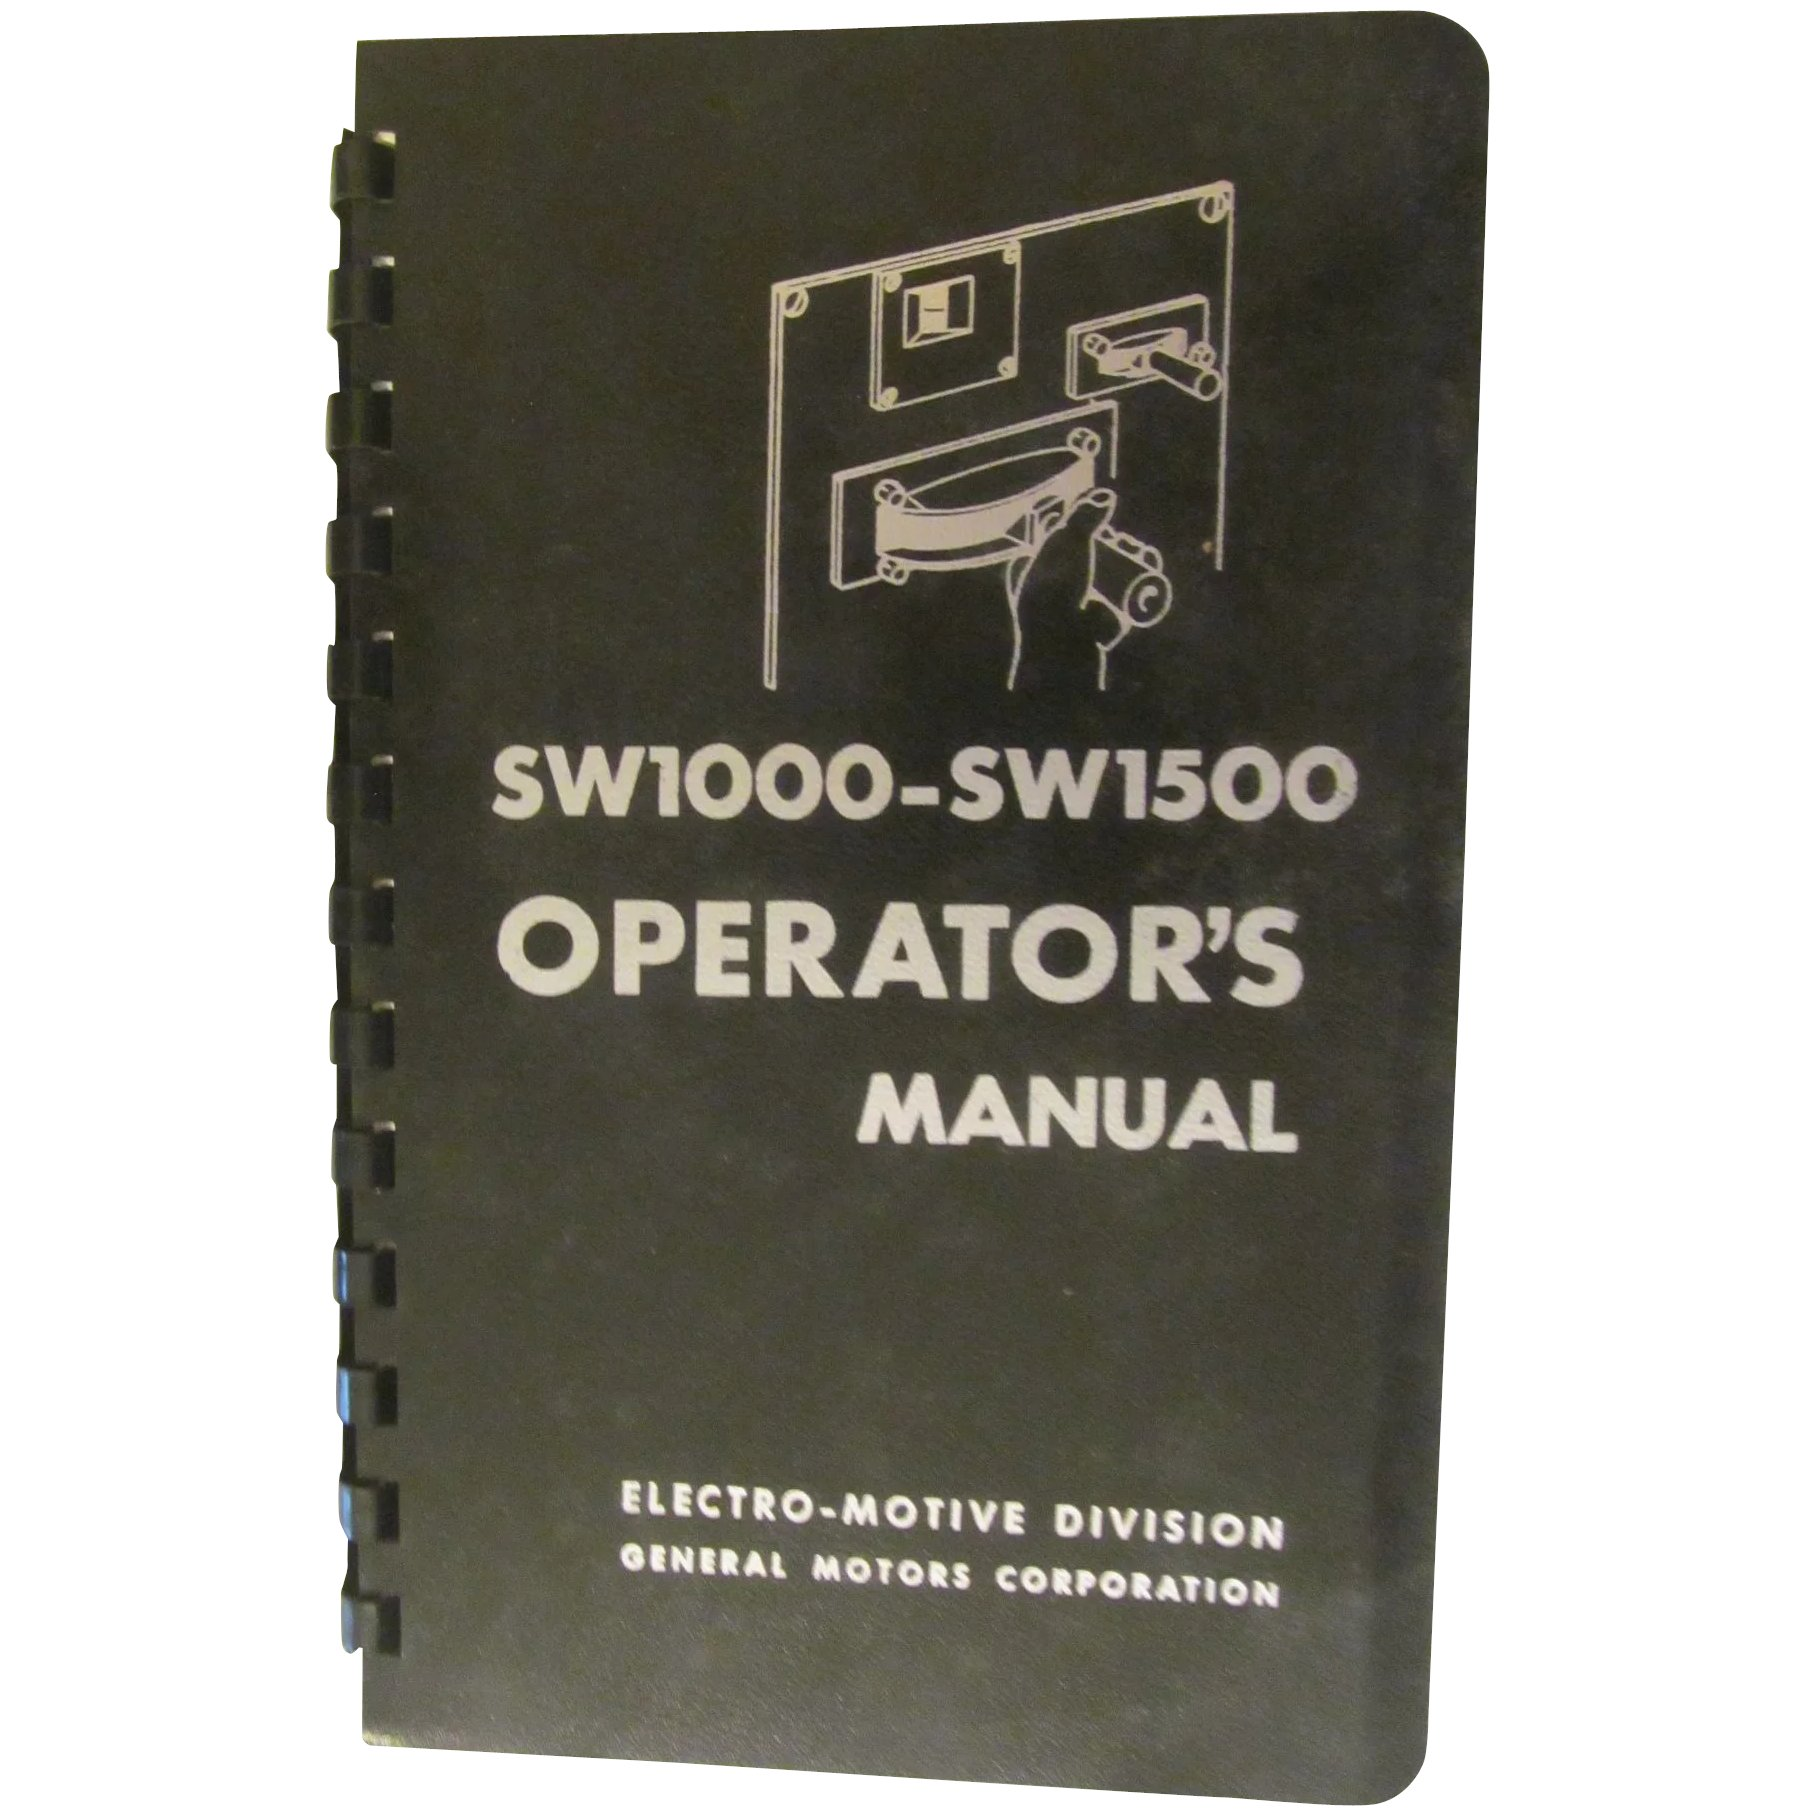 1969 emd diesel locomotive sw1000 sw1500 operators manual general rh rubylane com Relco Locomotives New Shop Relco Locomotives